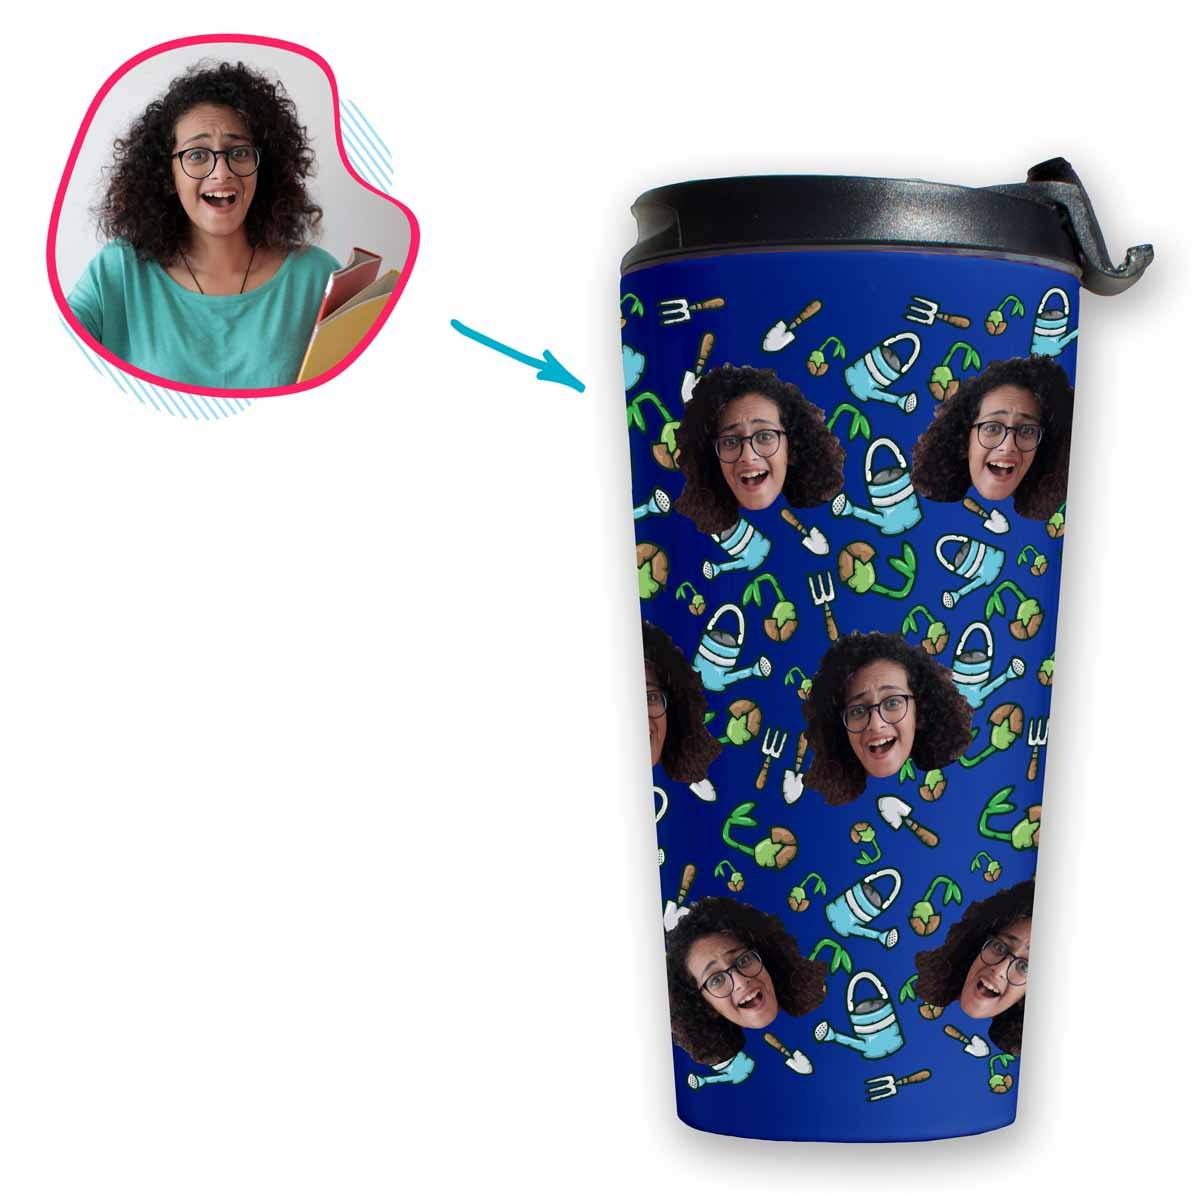 darkblue Gardening travel mug personalized with photo of face printed on it